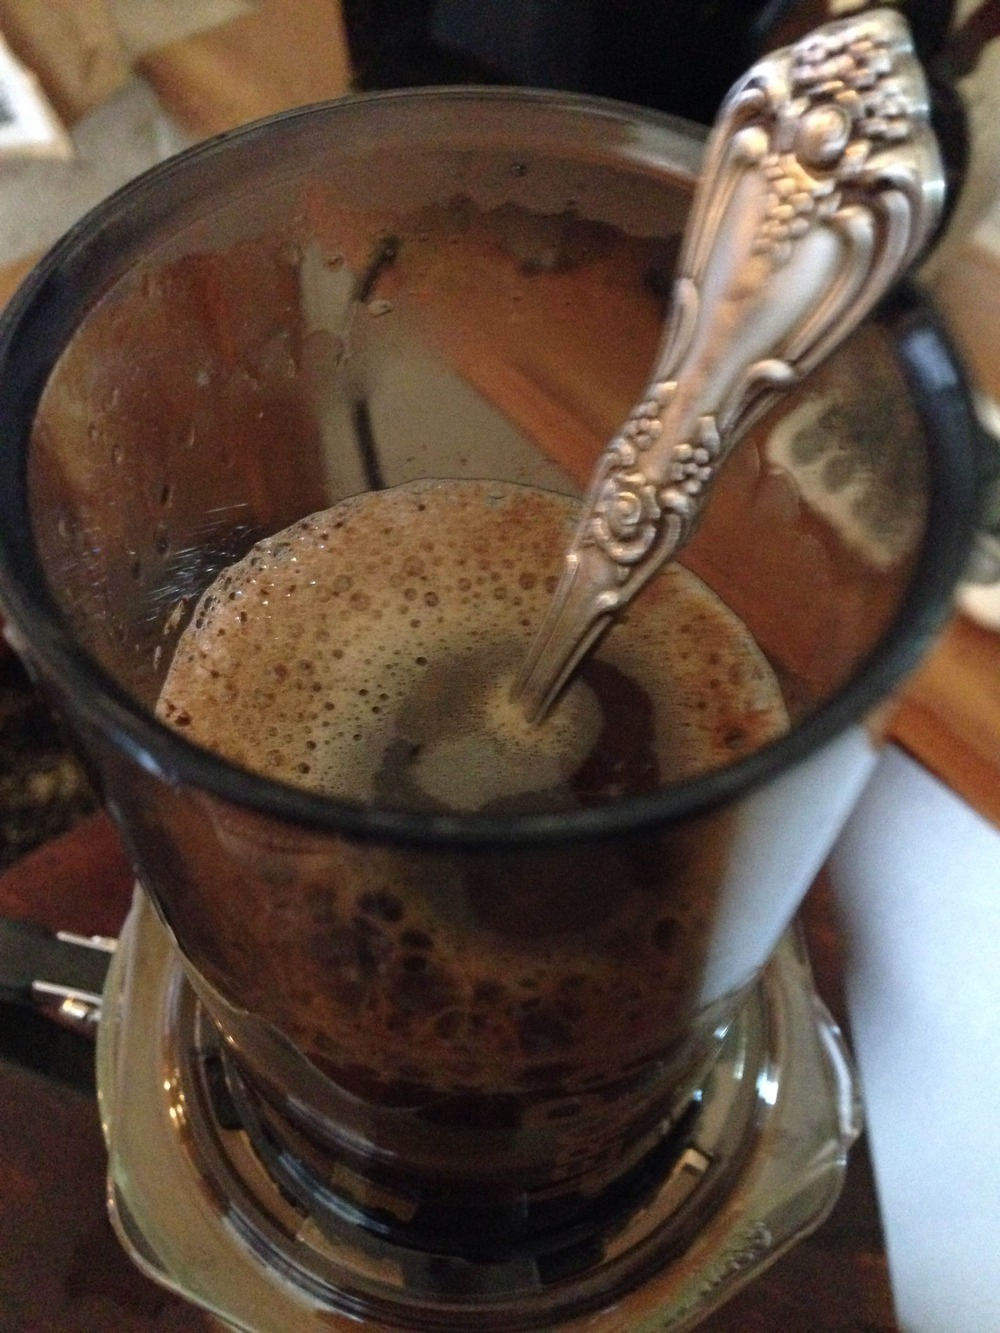 Stir the coffee as needed until all the water is added.